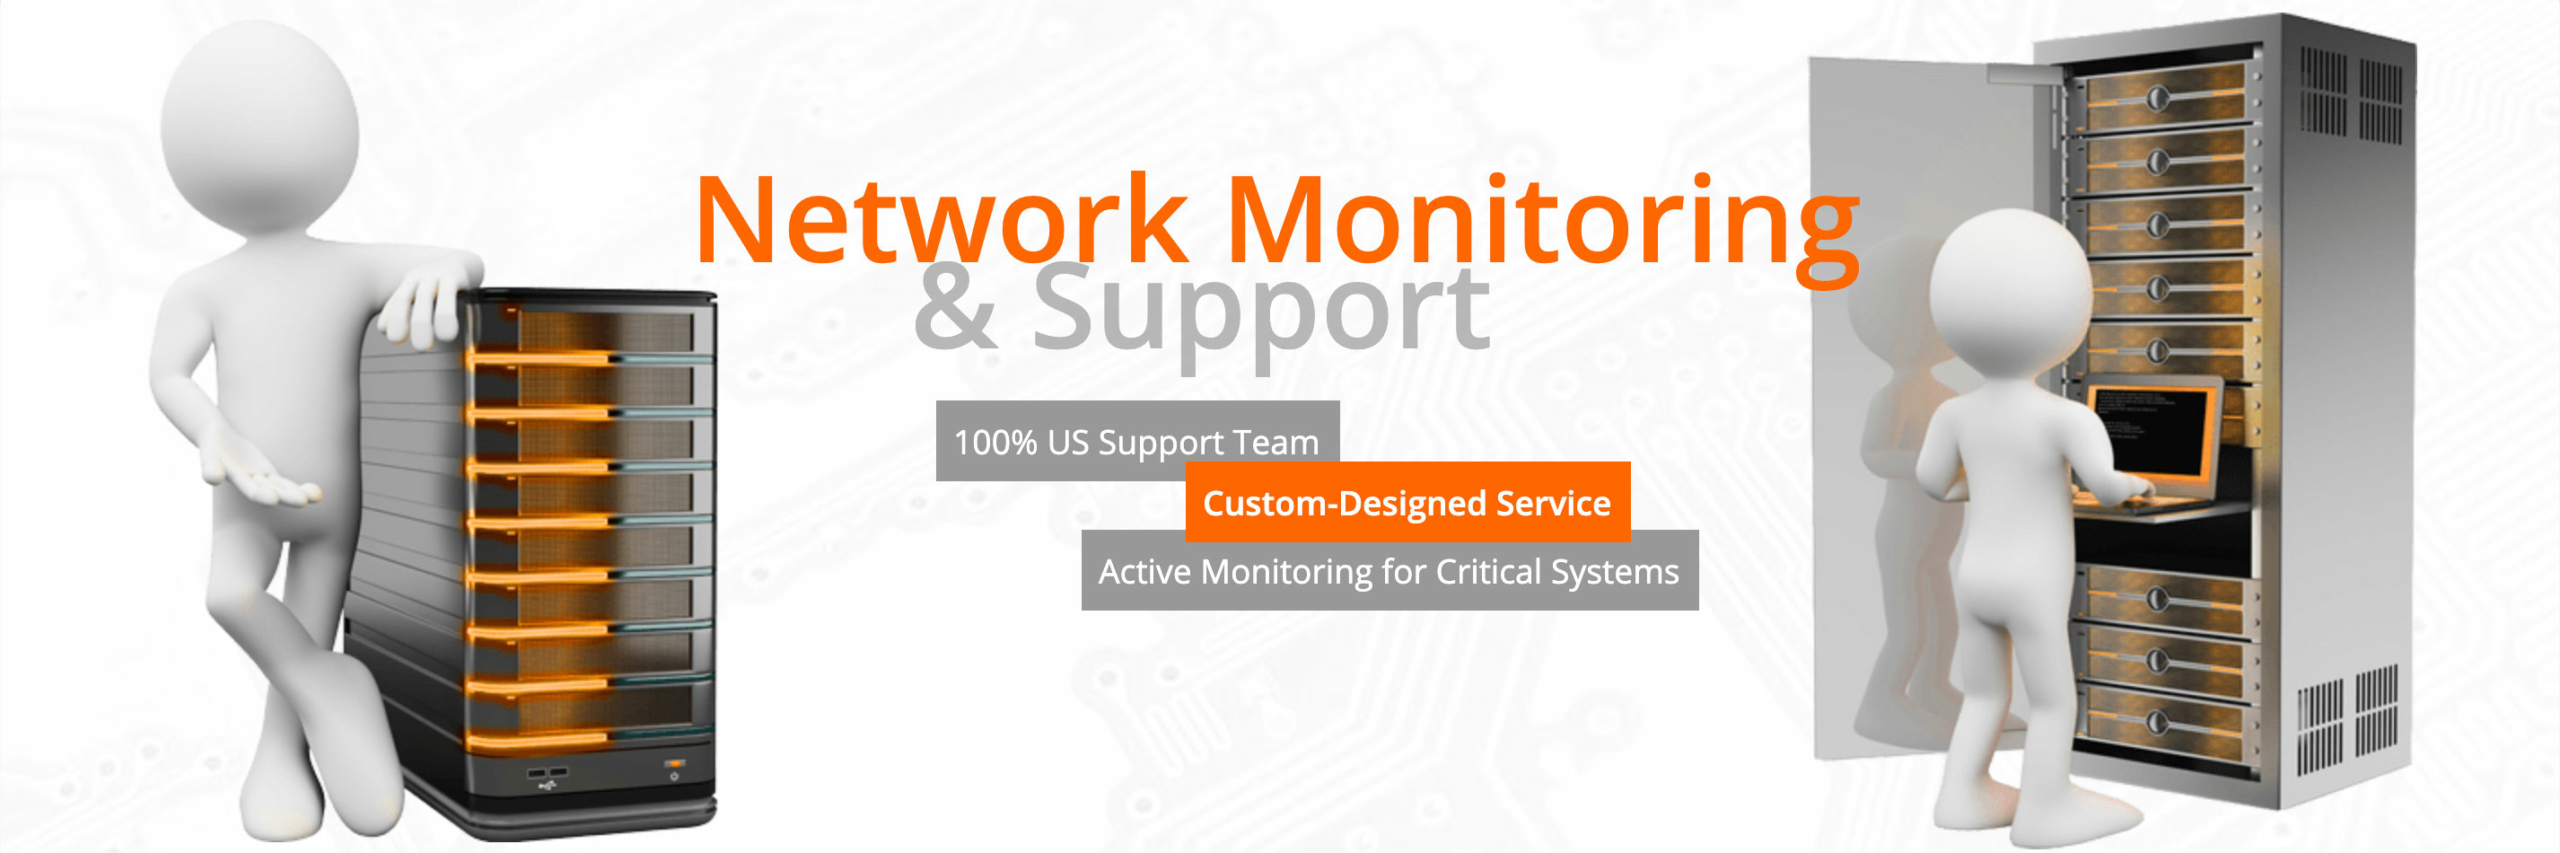 Inc-Sys Network Monitoring & Support | Active monitoring for critical systems from our US based support team | Custom designs available